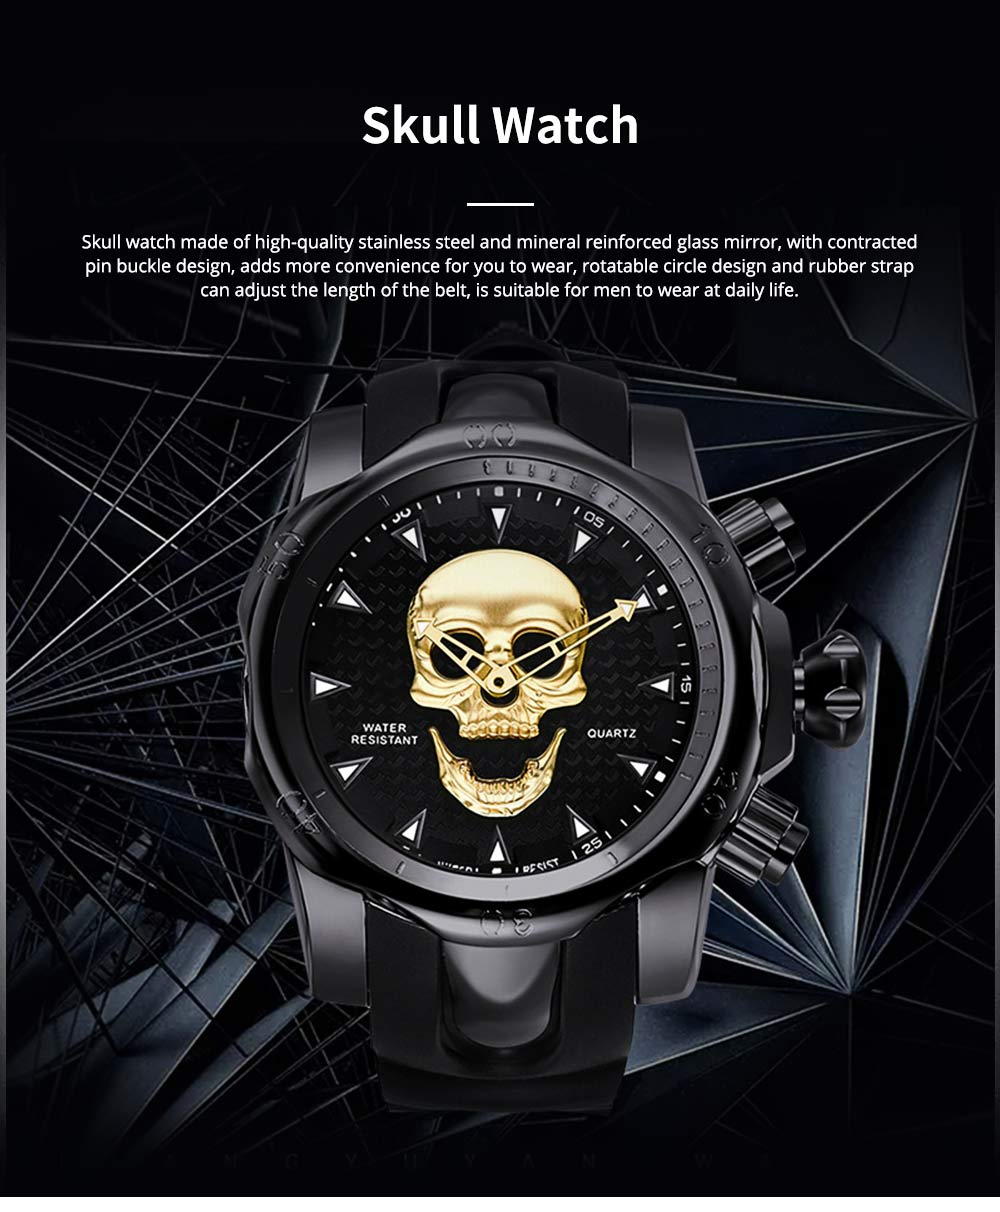 Skull Wrist Watch for Men Rotatable Circle Rubber Strap Contracted Pin Buckle Stainless Steel Sturdy and Durable Personality Watch 0